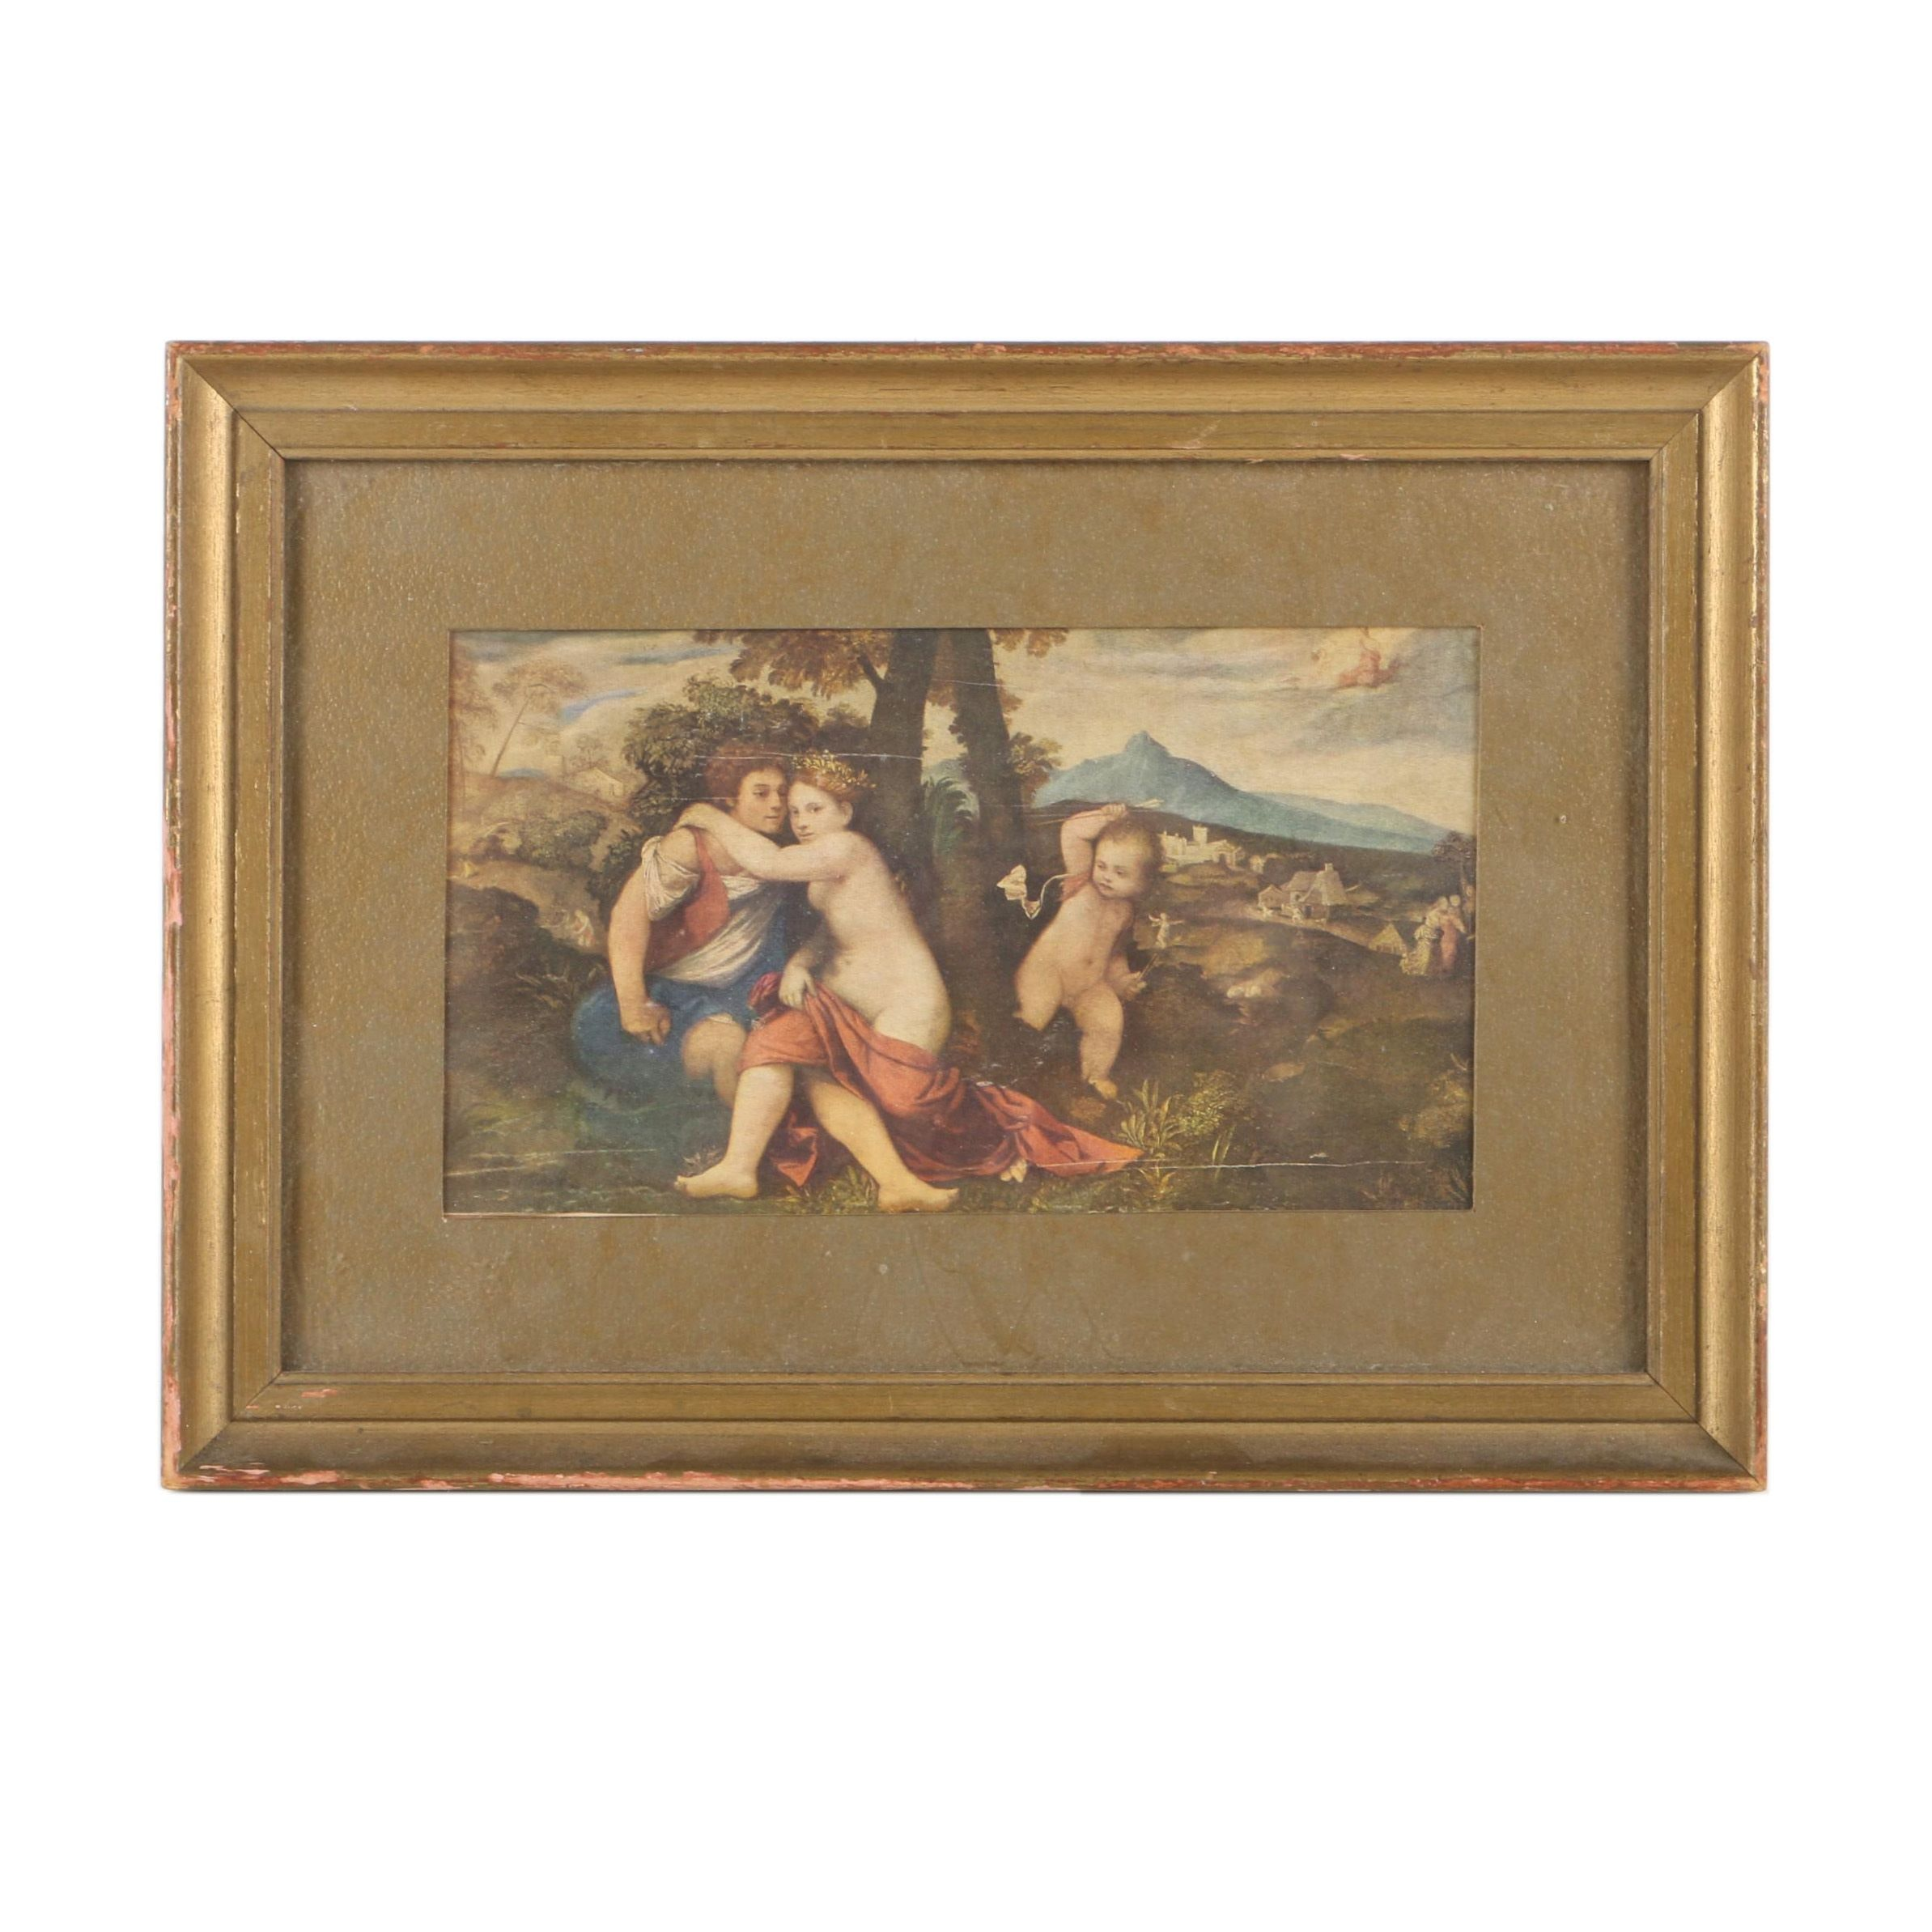 Offset Lithograph Print of Venus, Vulcan, and Cupid